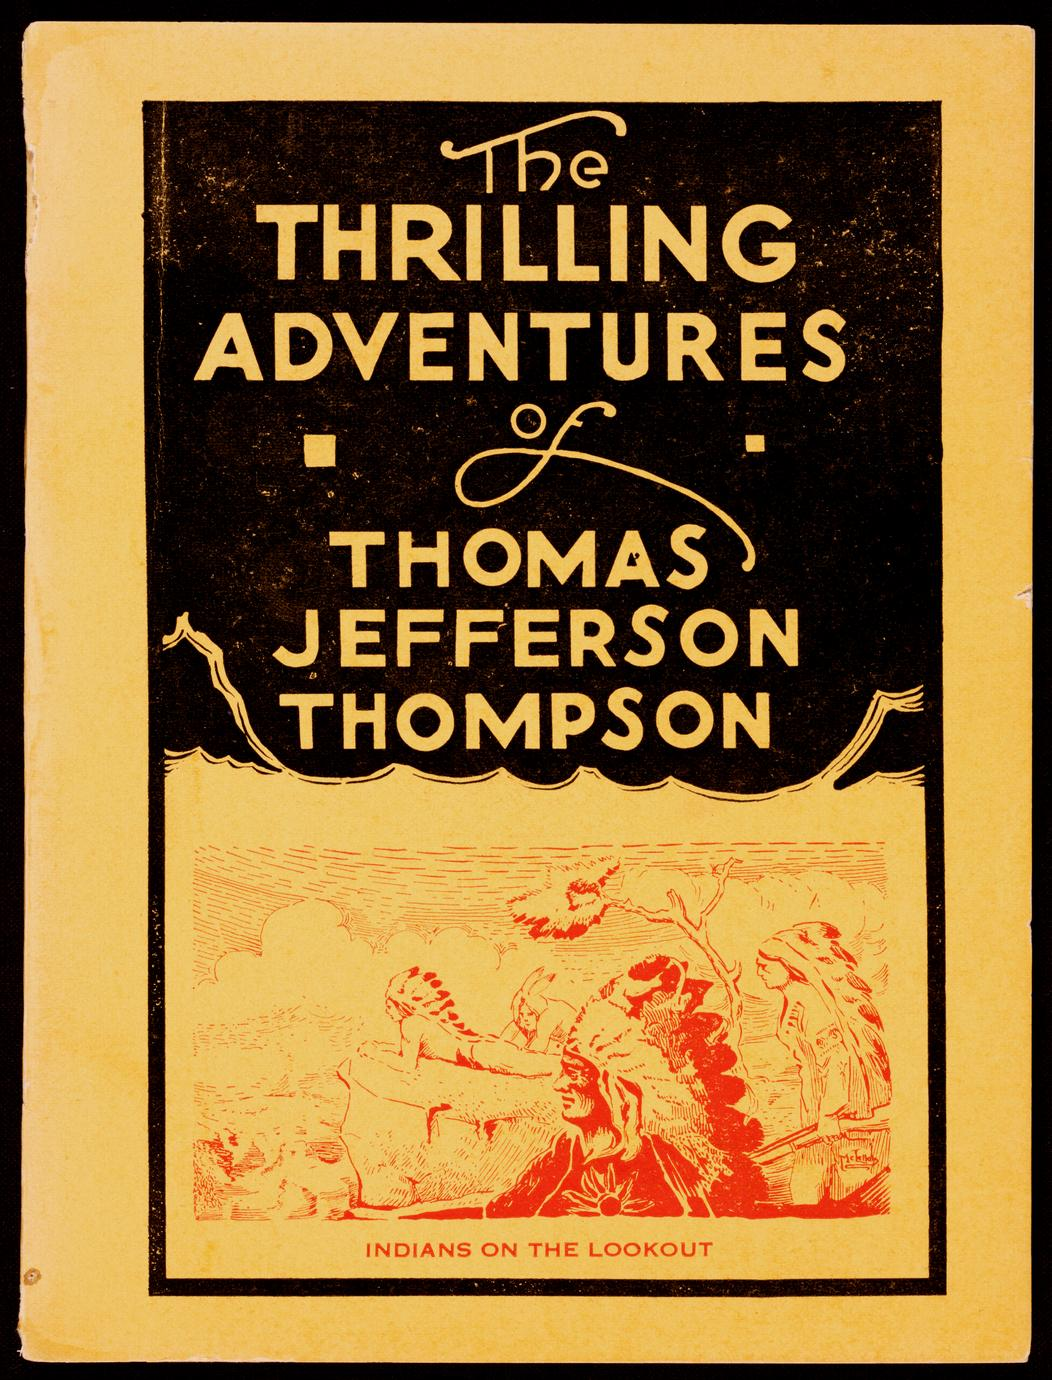 The thrilling adventures of Thomas Jefferson Thompson (1 of 3)